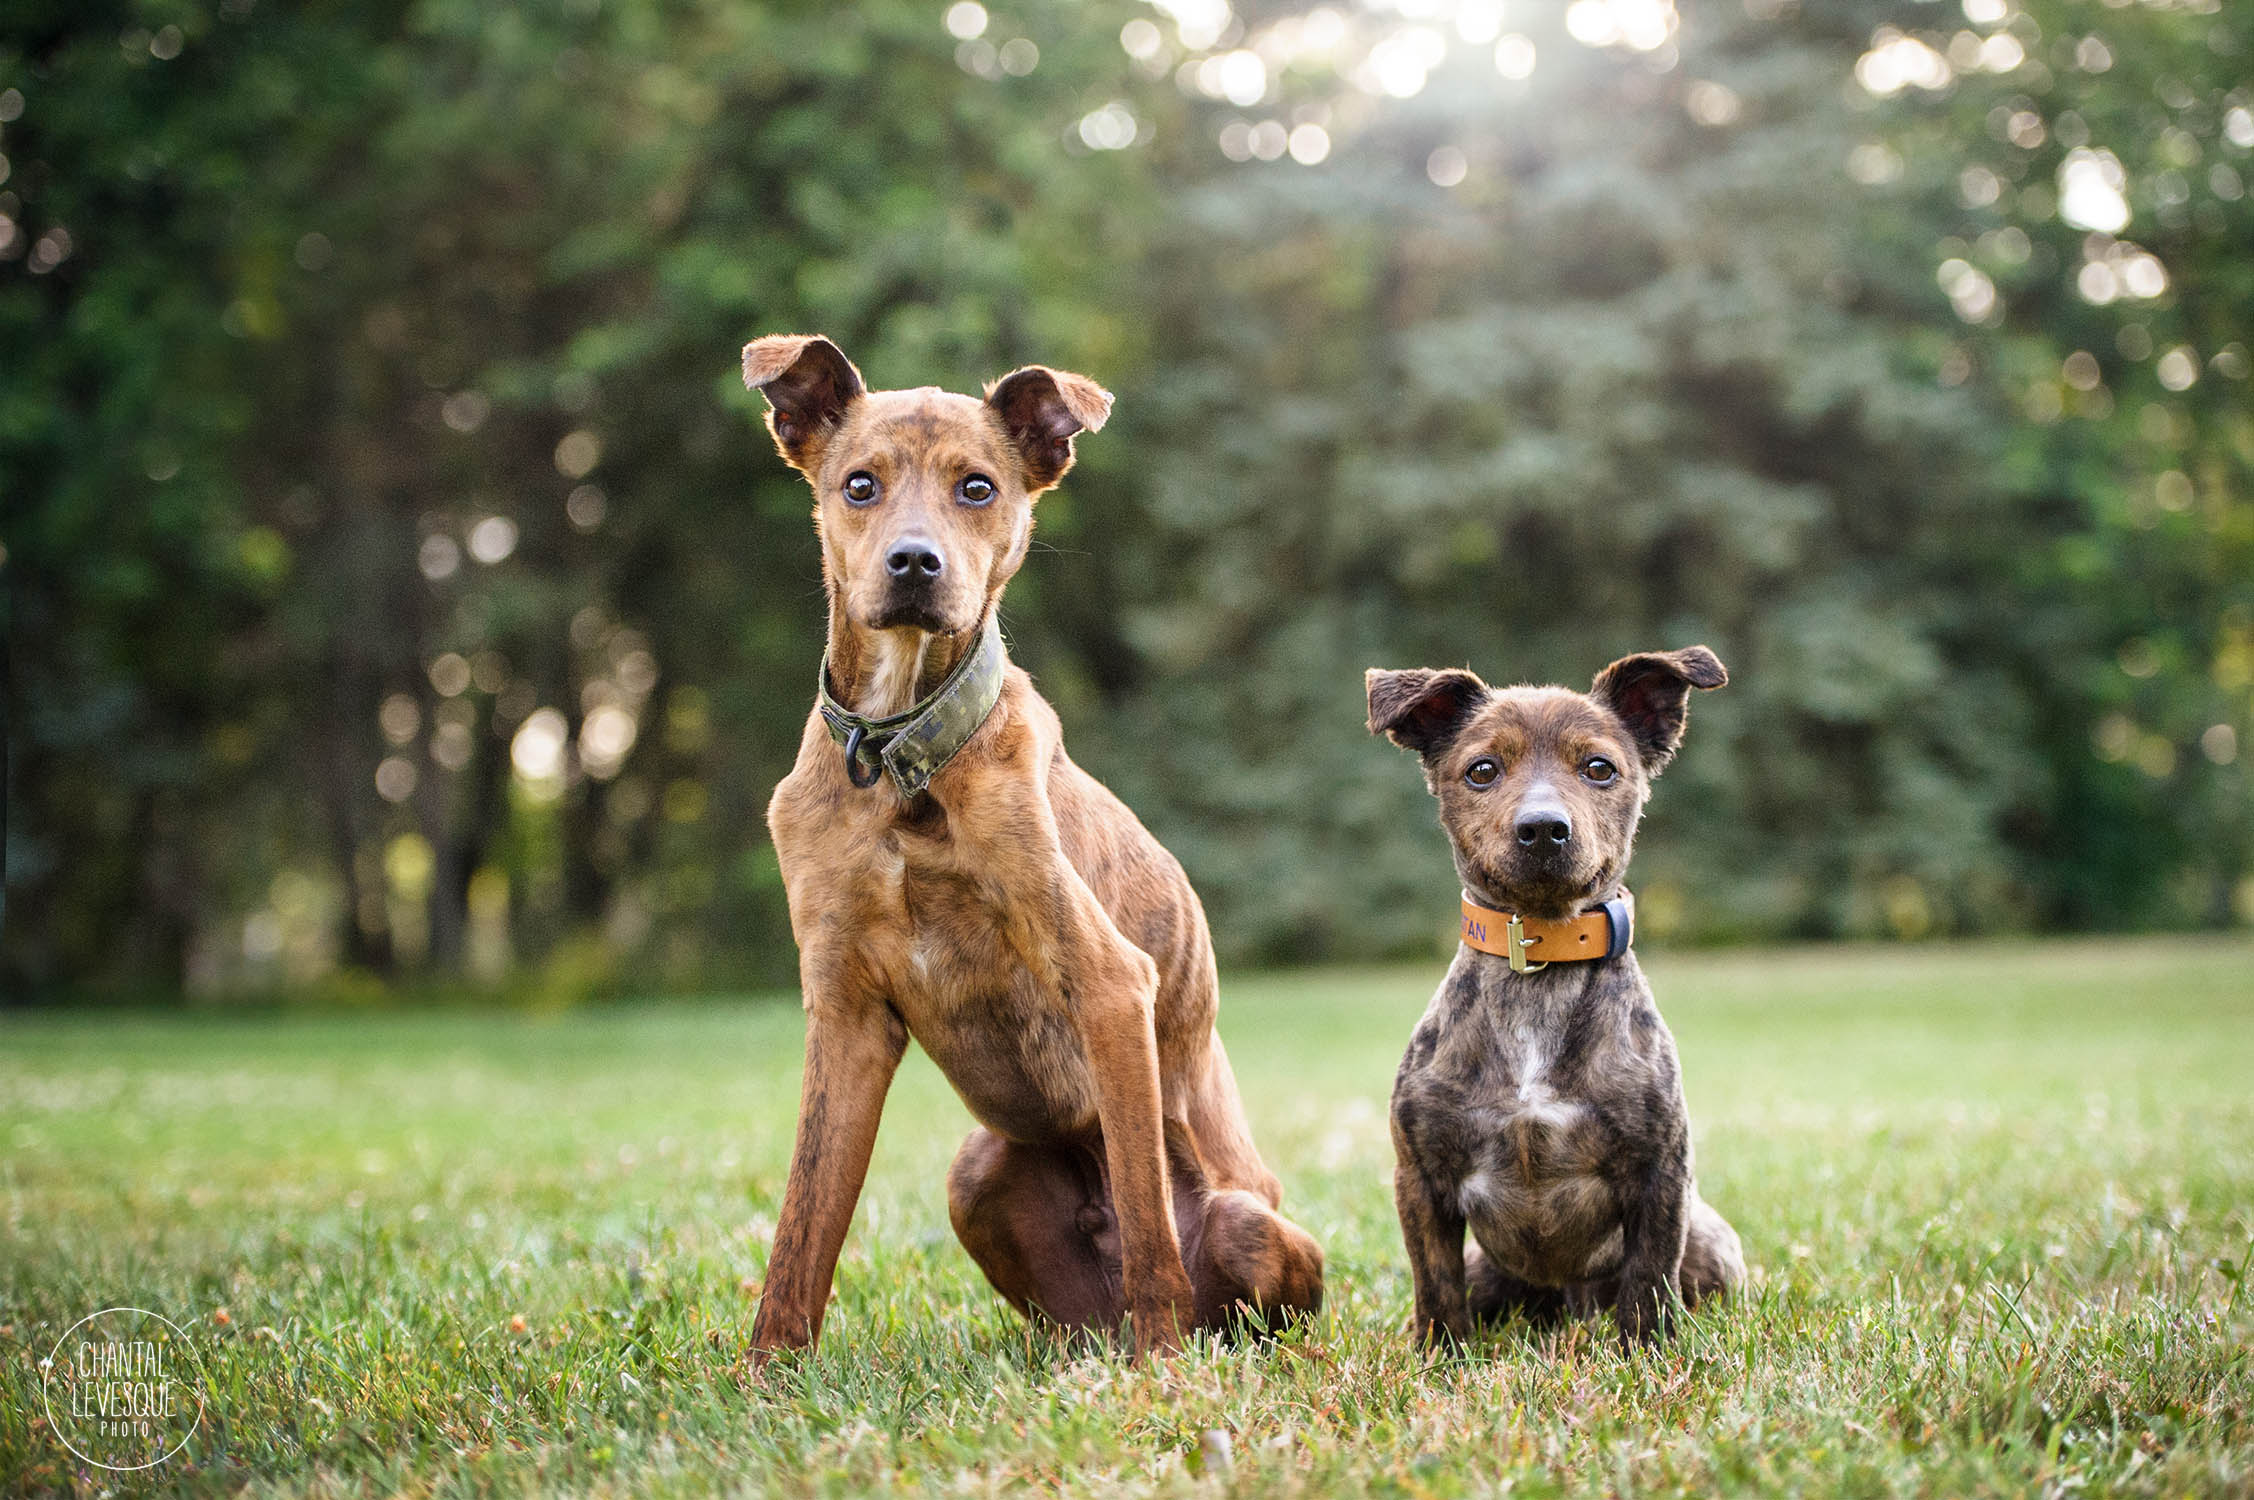 two-mutts-adoption-success-stories-montreal.jpg